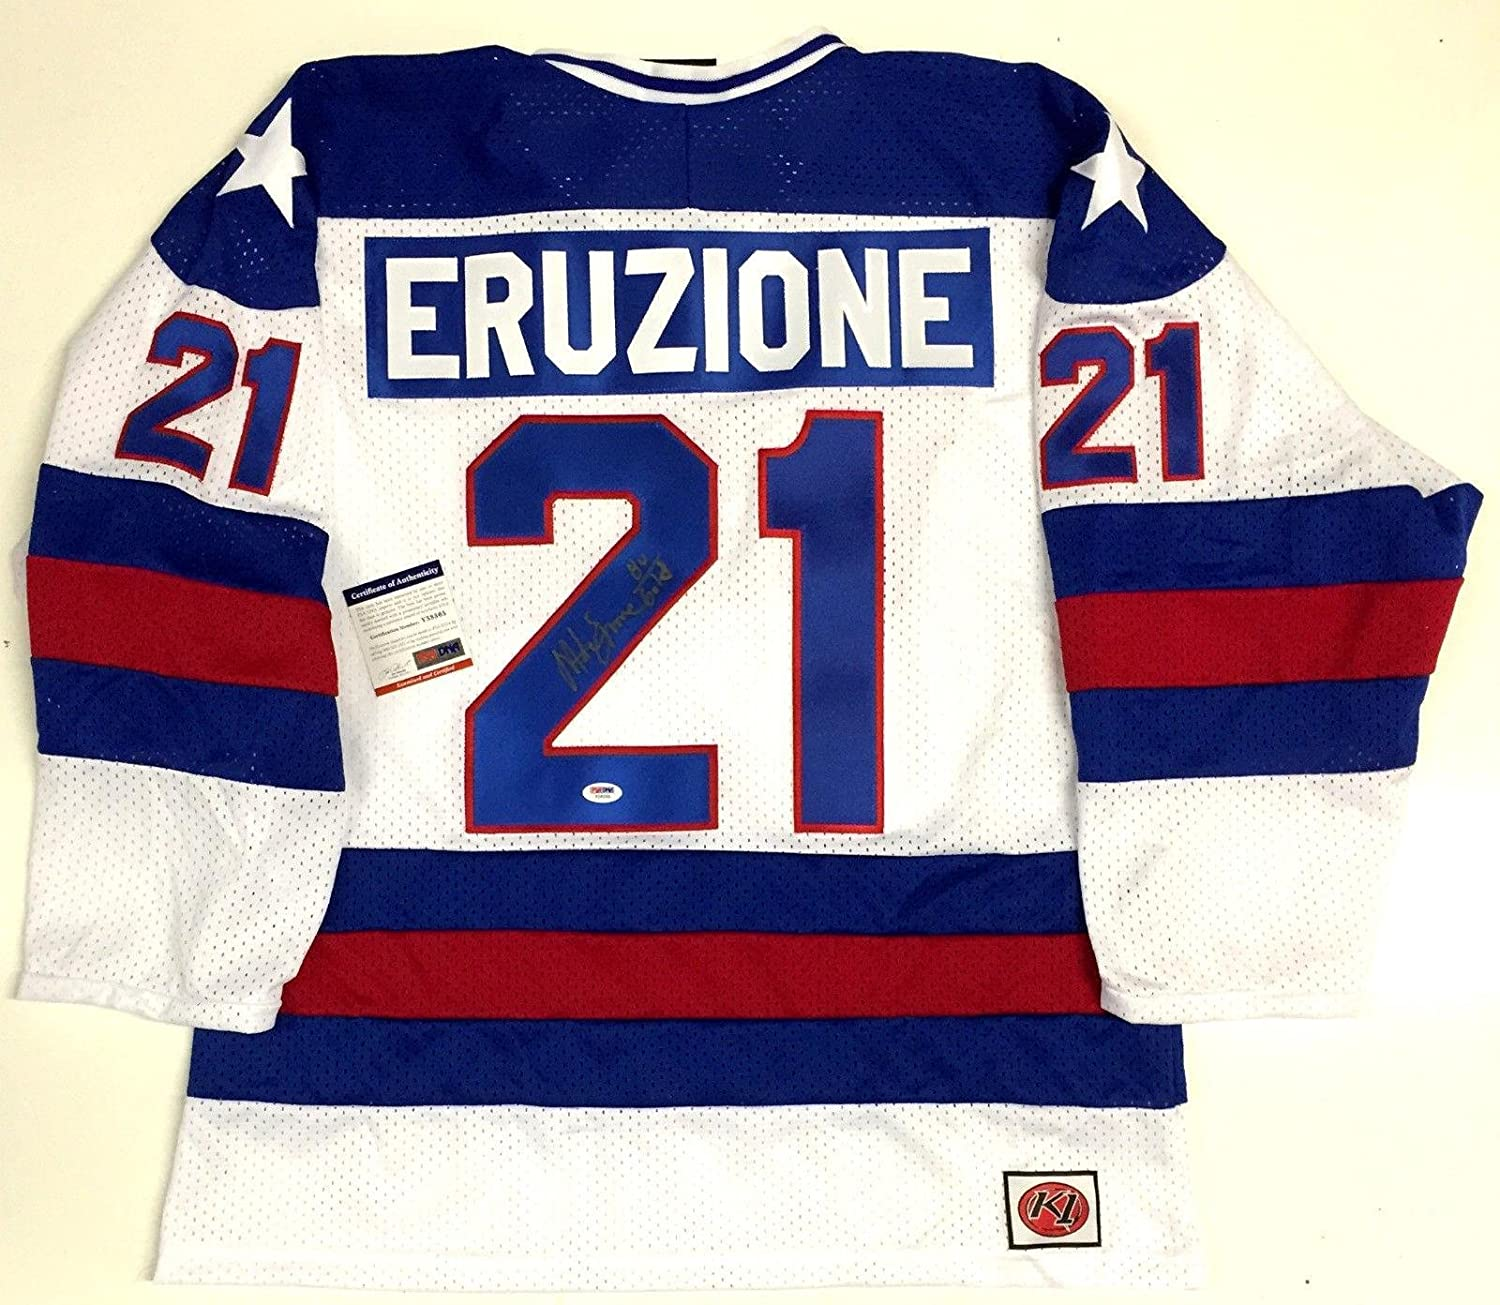 Mike Eruzione 1980 Team Usa Olympics Signed Jersey Psa/dna Coa With 1980 Gold - Autographed Olympic Jerseys